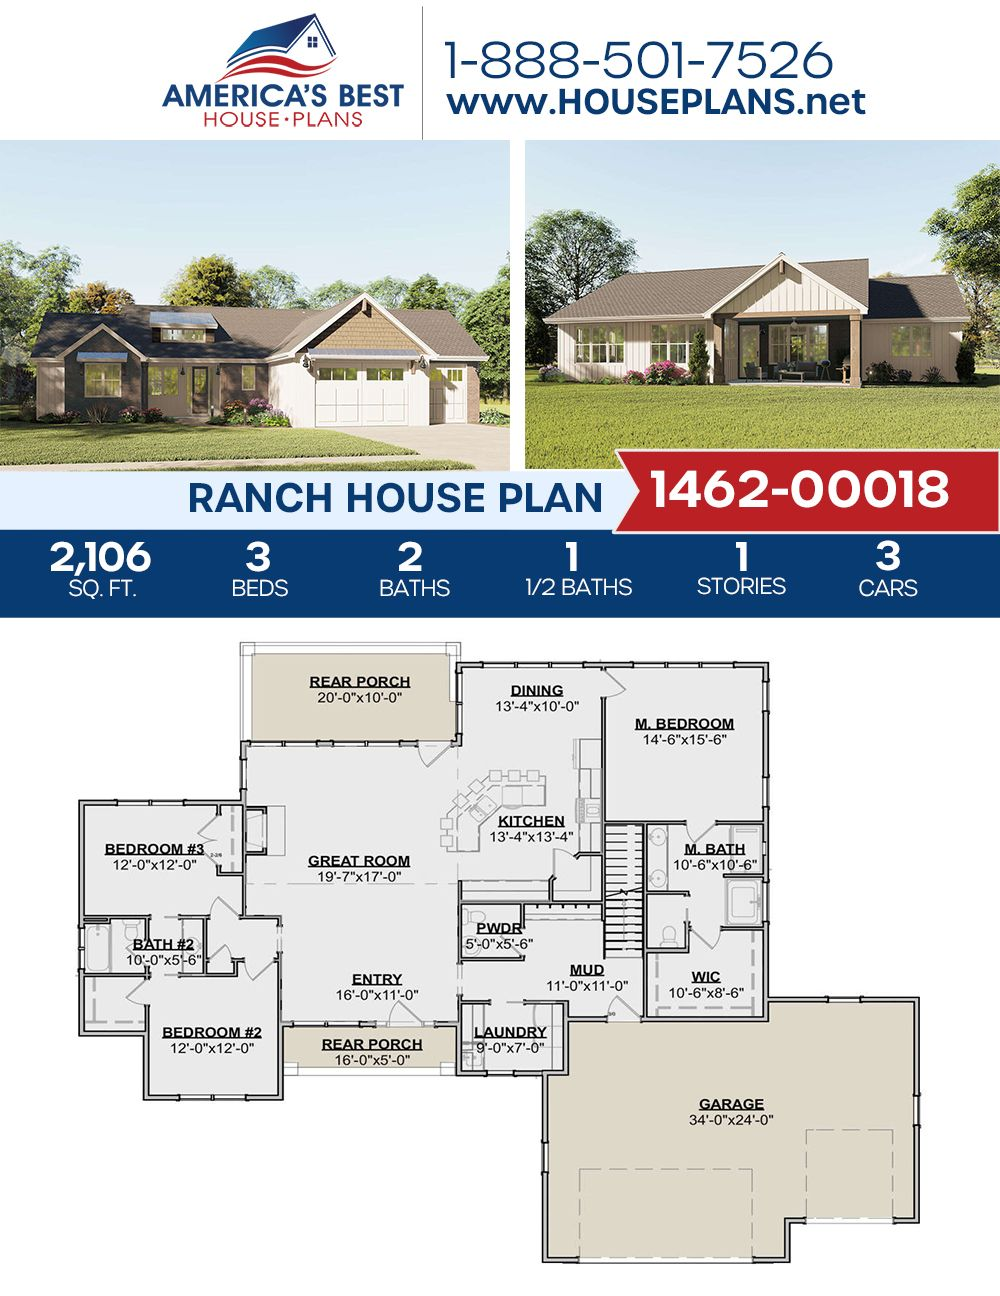 House Plan 1462 00018 Ranch Plan 2 106 Square Feet 3 Bedrooms 2 5 Bathrooms Ranch House Plan Exclusive House Plan Floor Plans Ranch